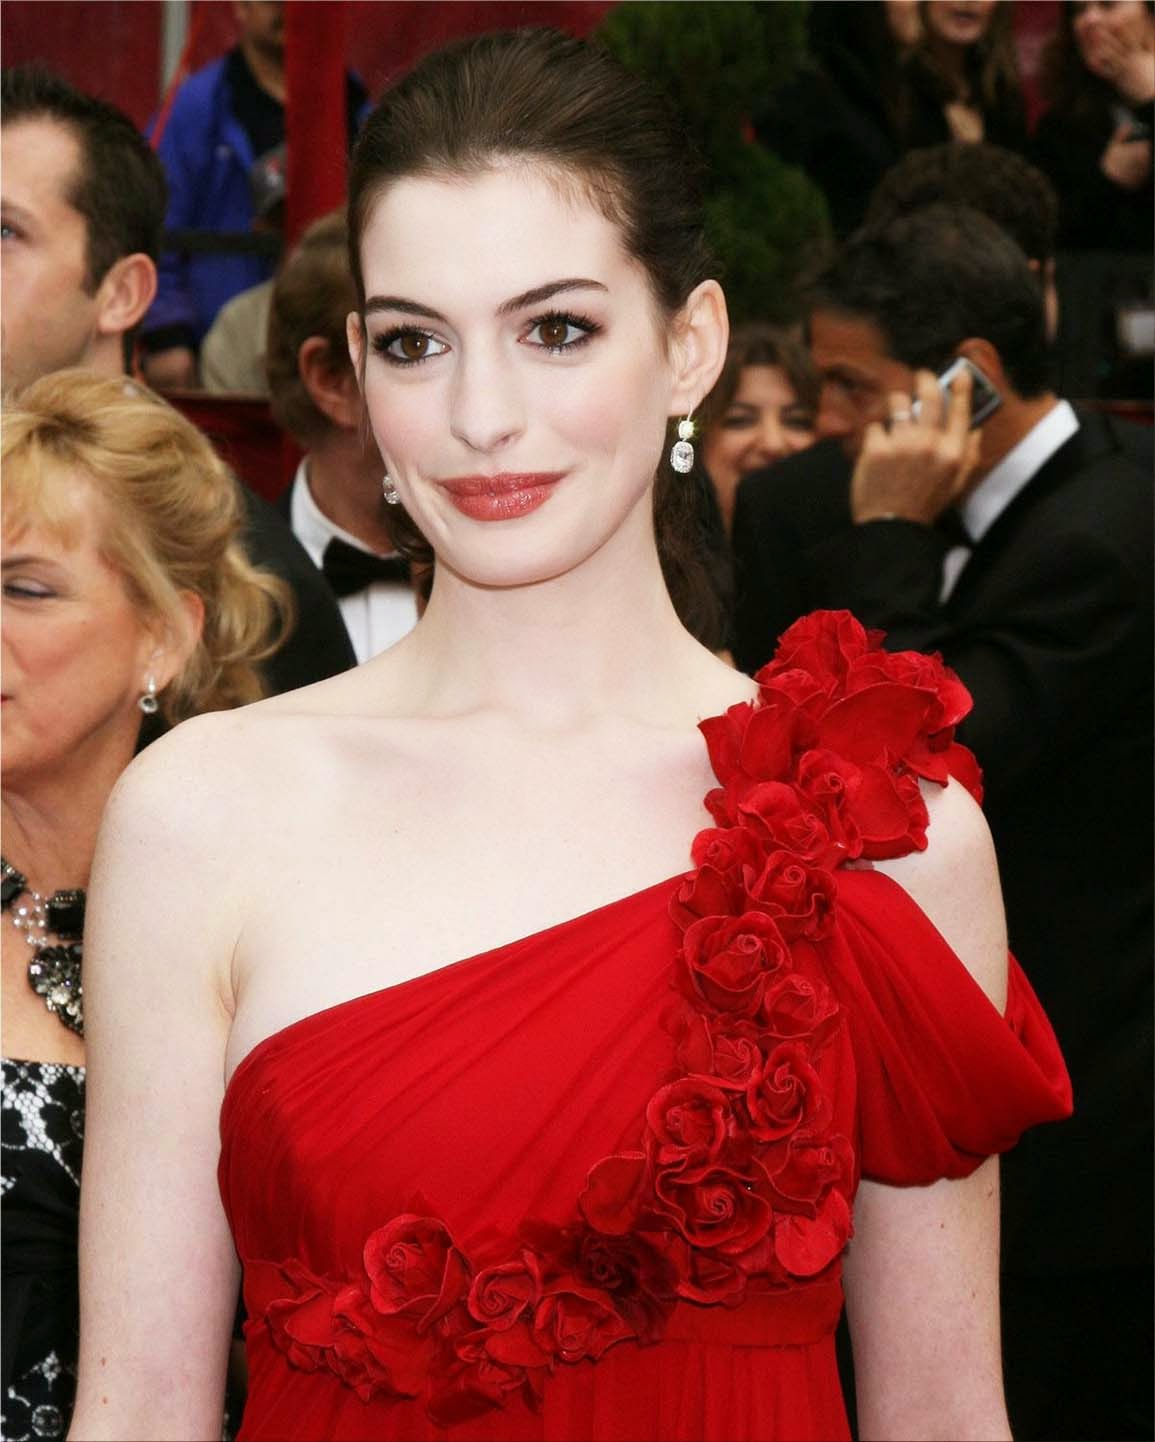 American Actress Anne Jacqueline Hathaway Image And Photo